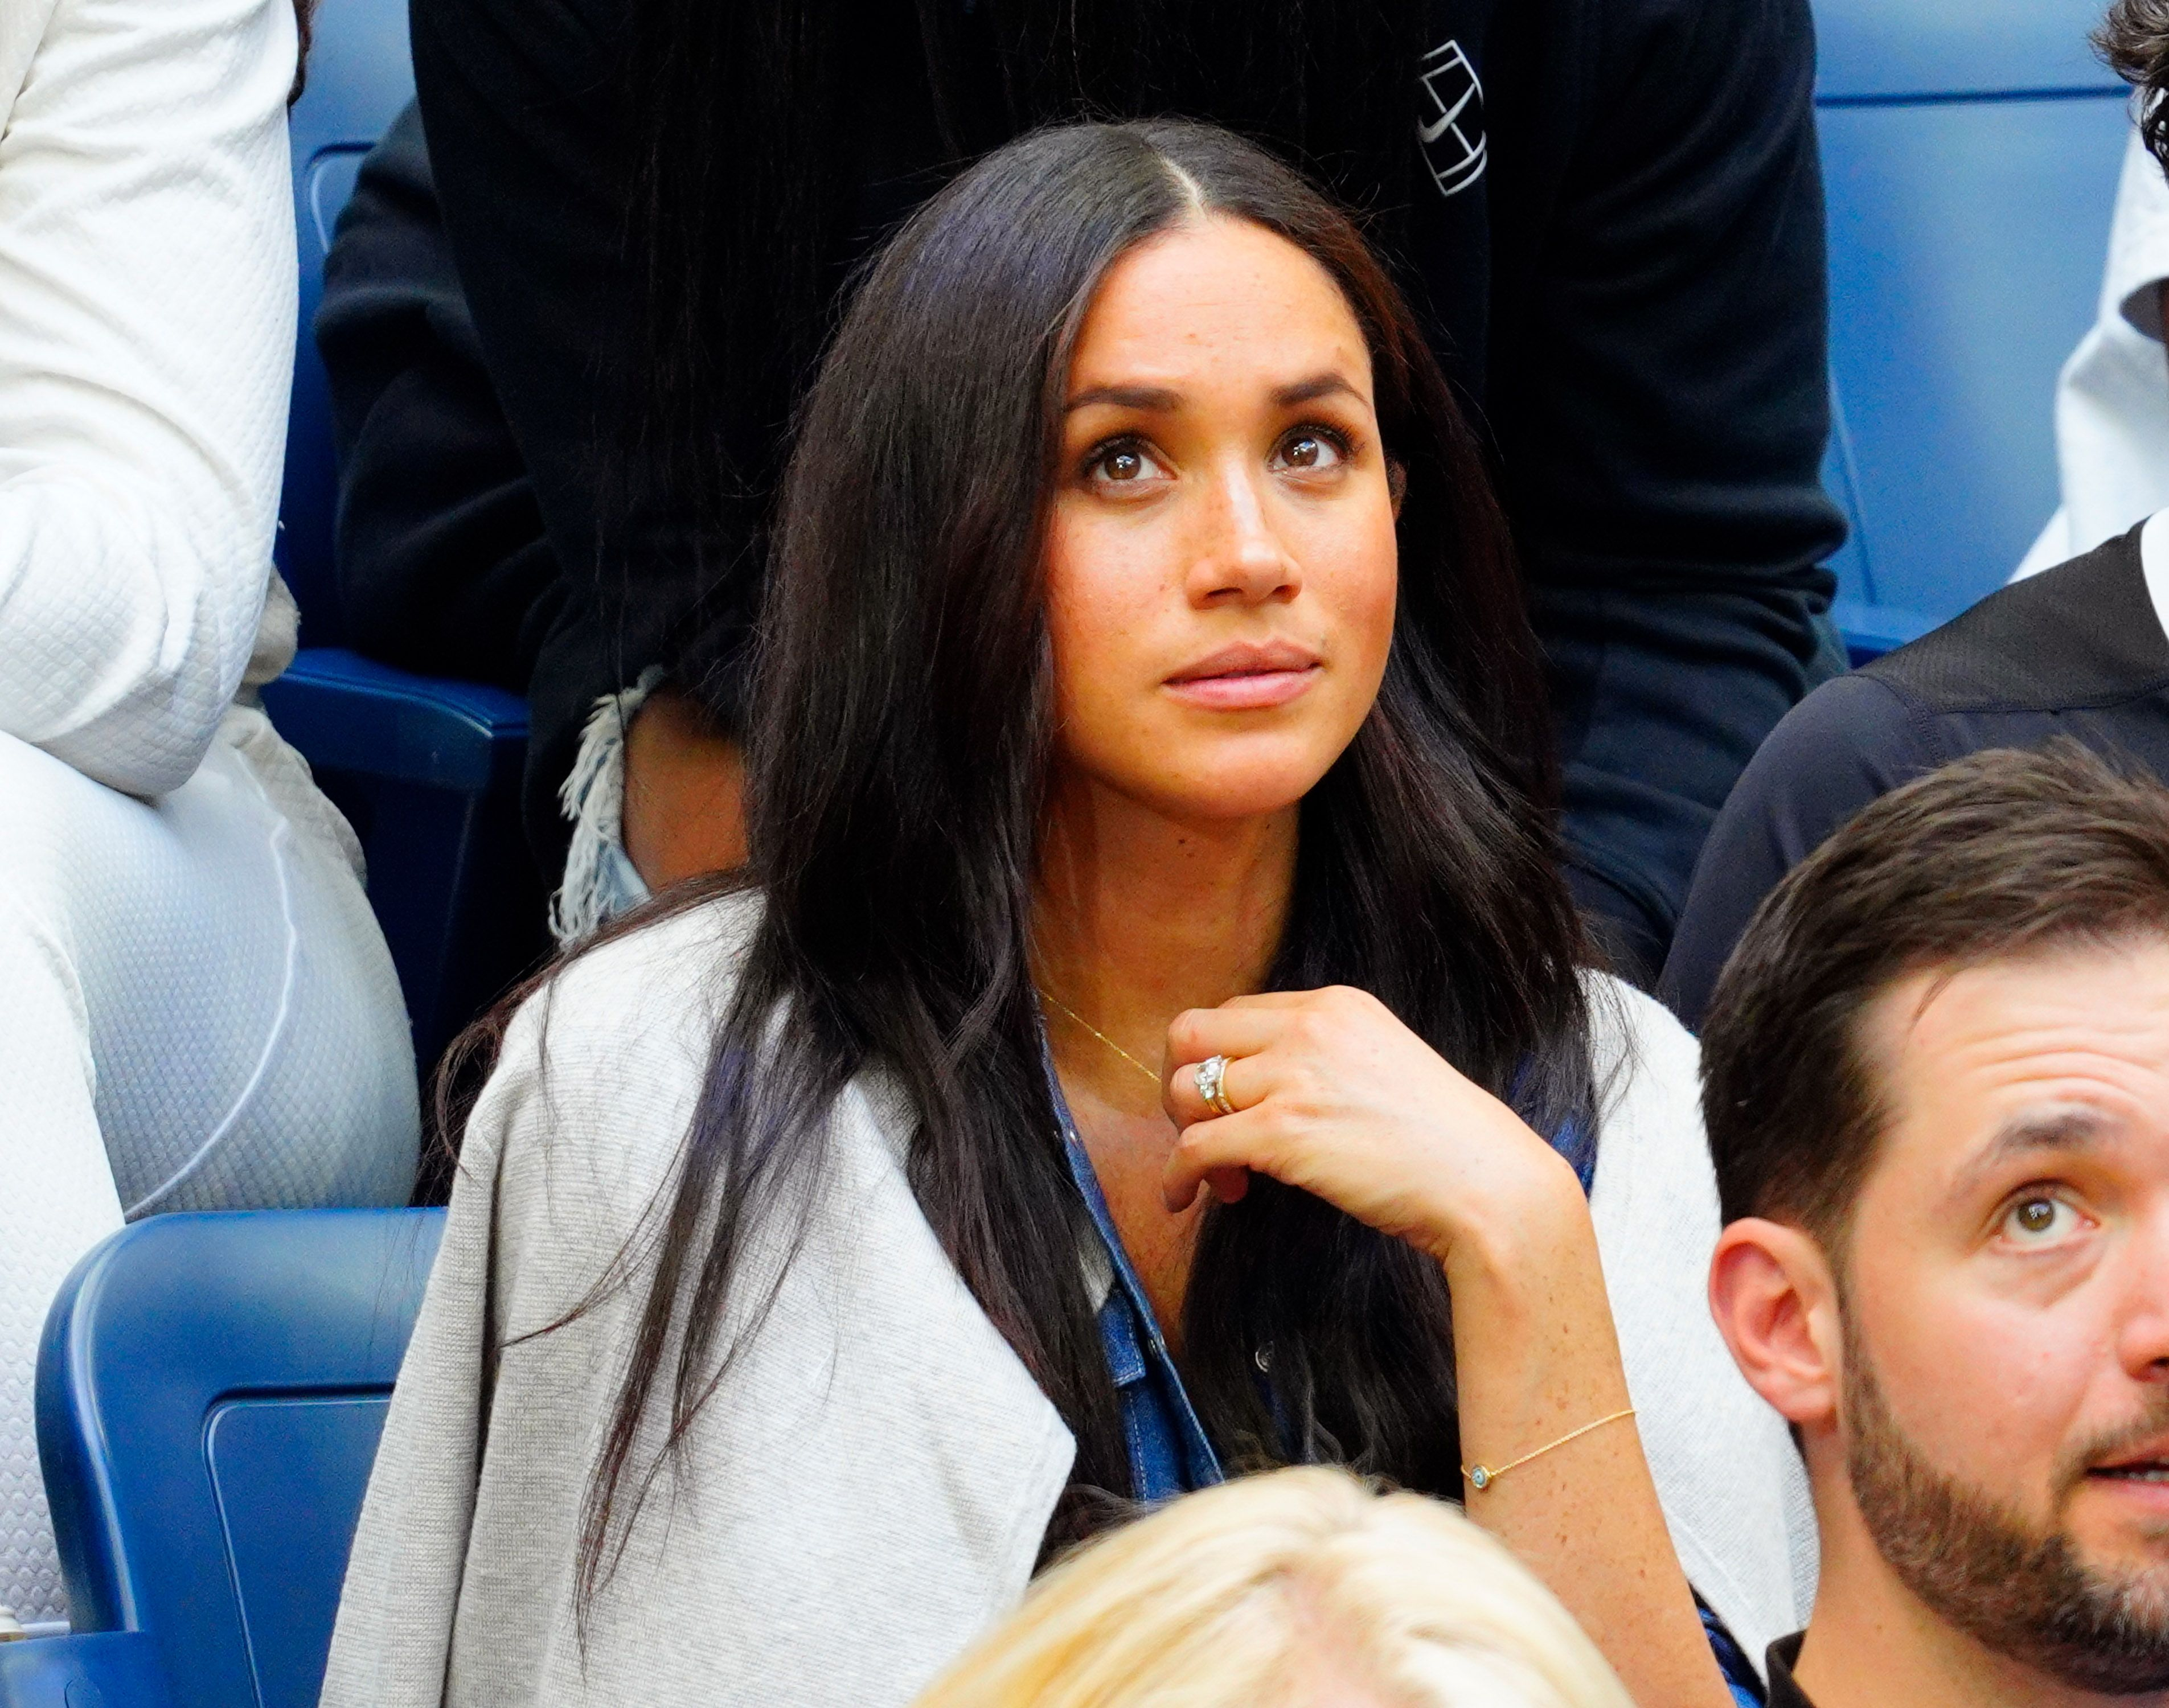 Meghan Markle Was 'Determined' to Keep Her New York City Trip 'Under-the-Radar'